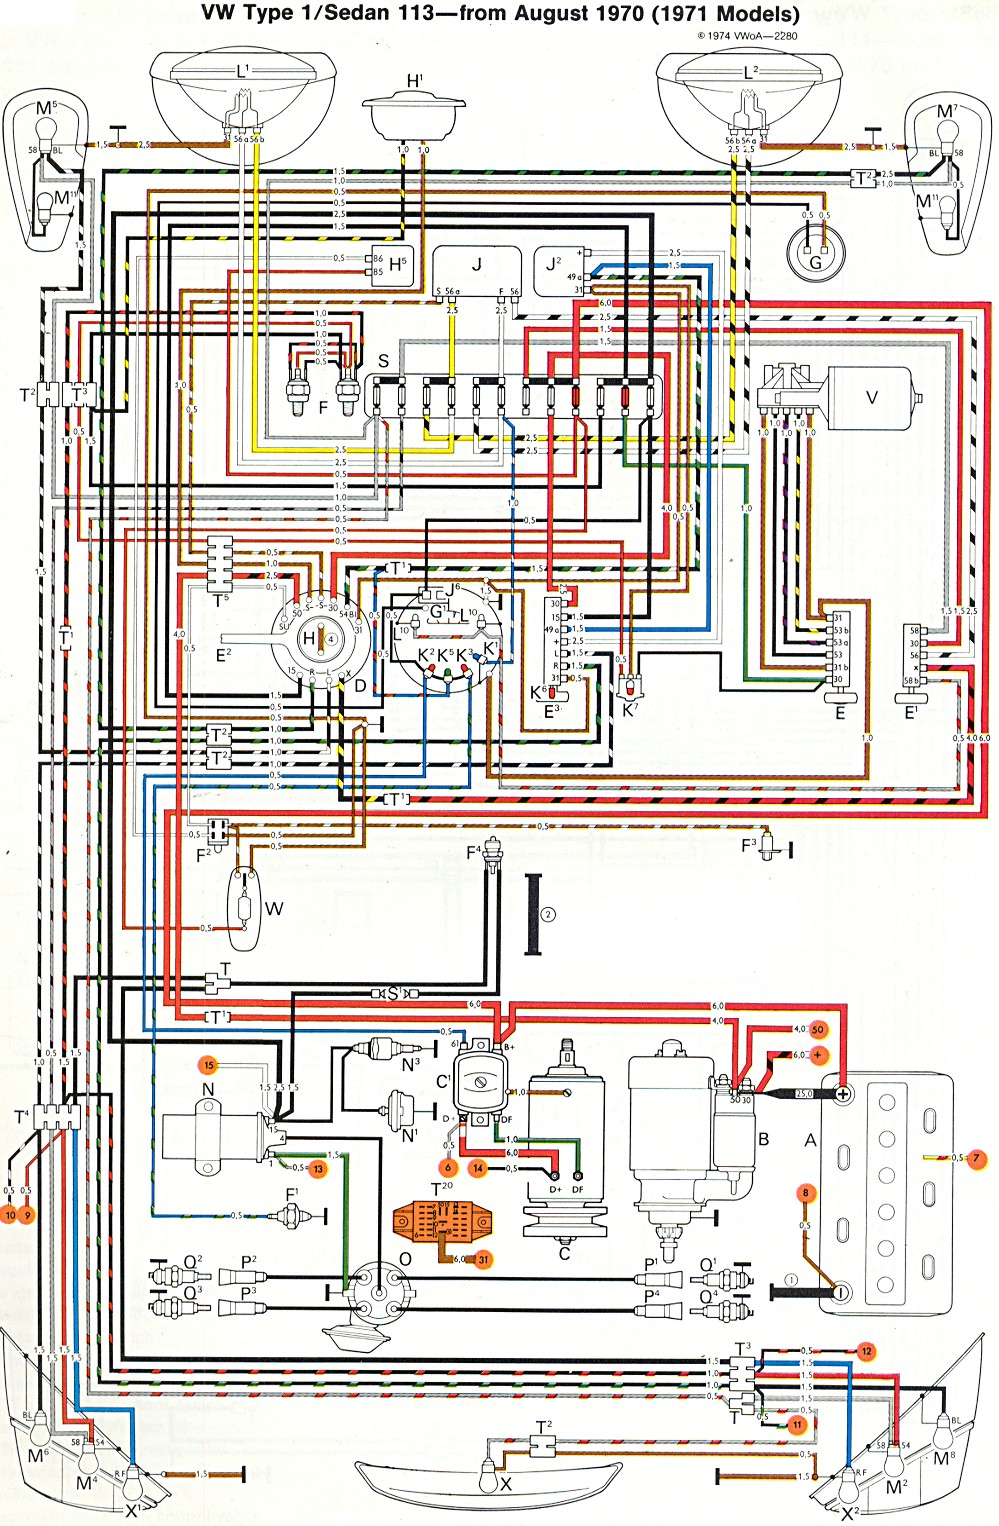 Door Wiring Schematic For 2008 Gti Library Vw Diagram Volkswagen Beetle Sample Air Conditioner 1967